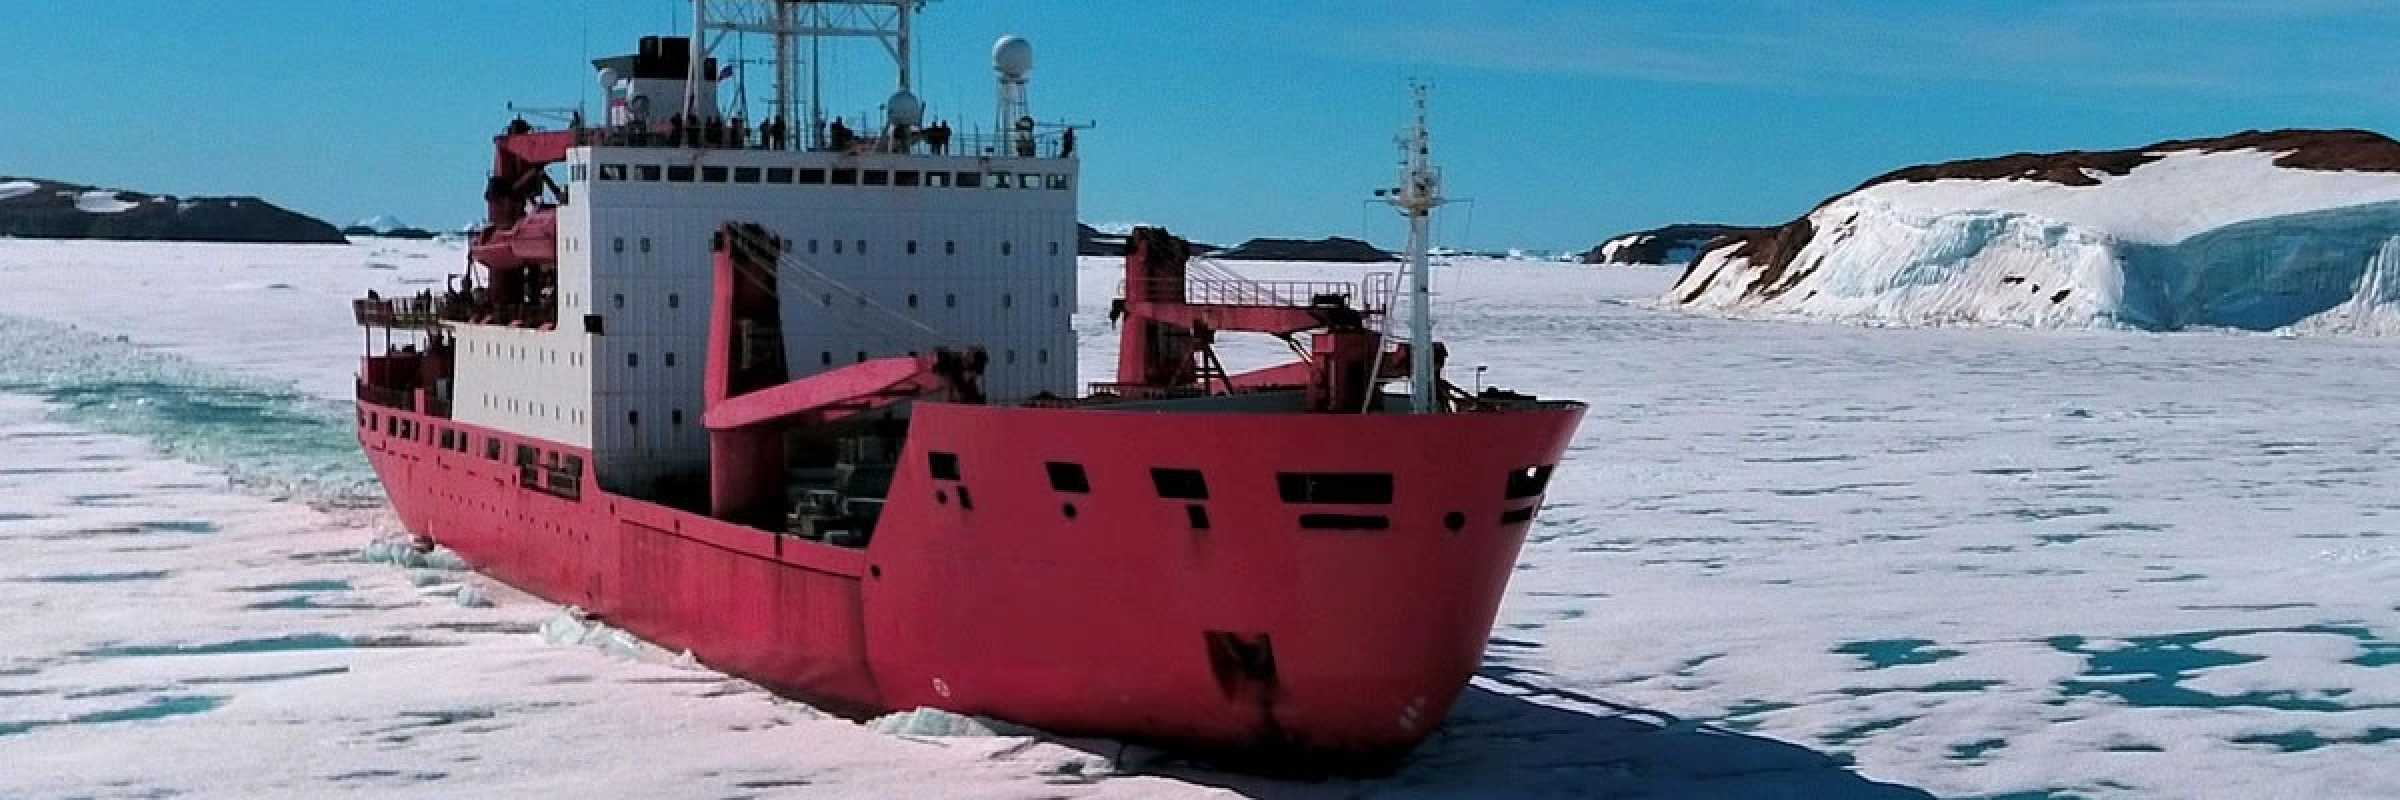 More infrastructure support required to facilitate insurance for Arctic sailings